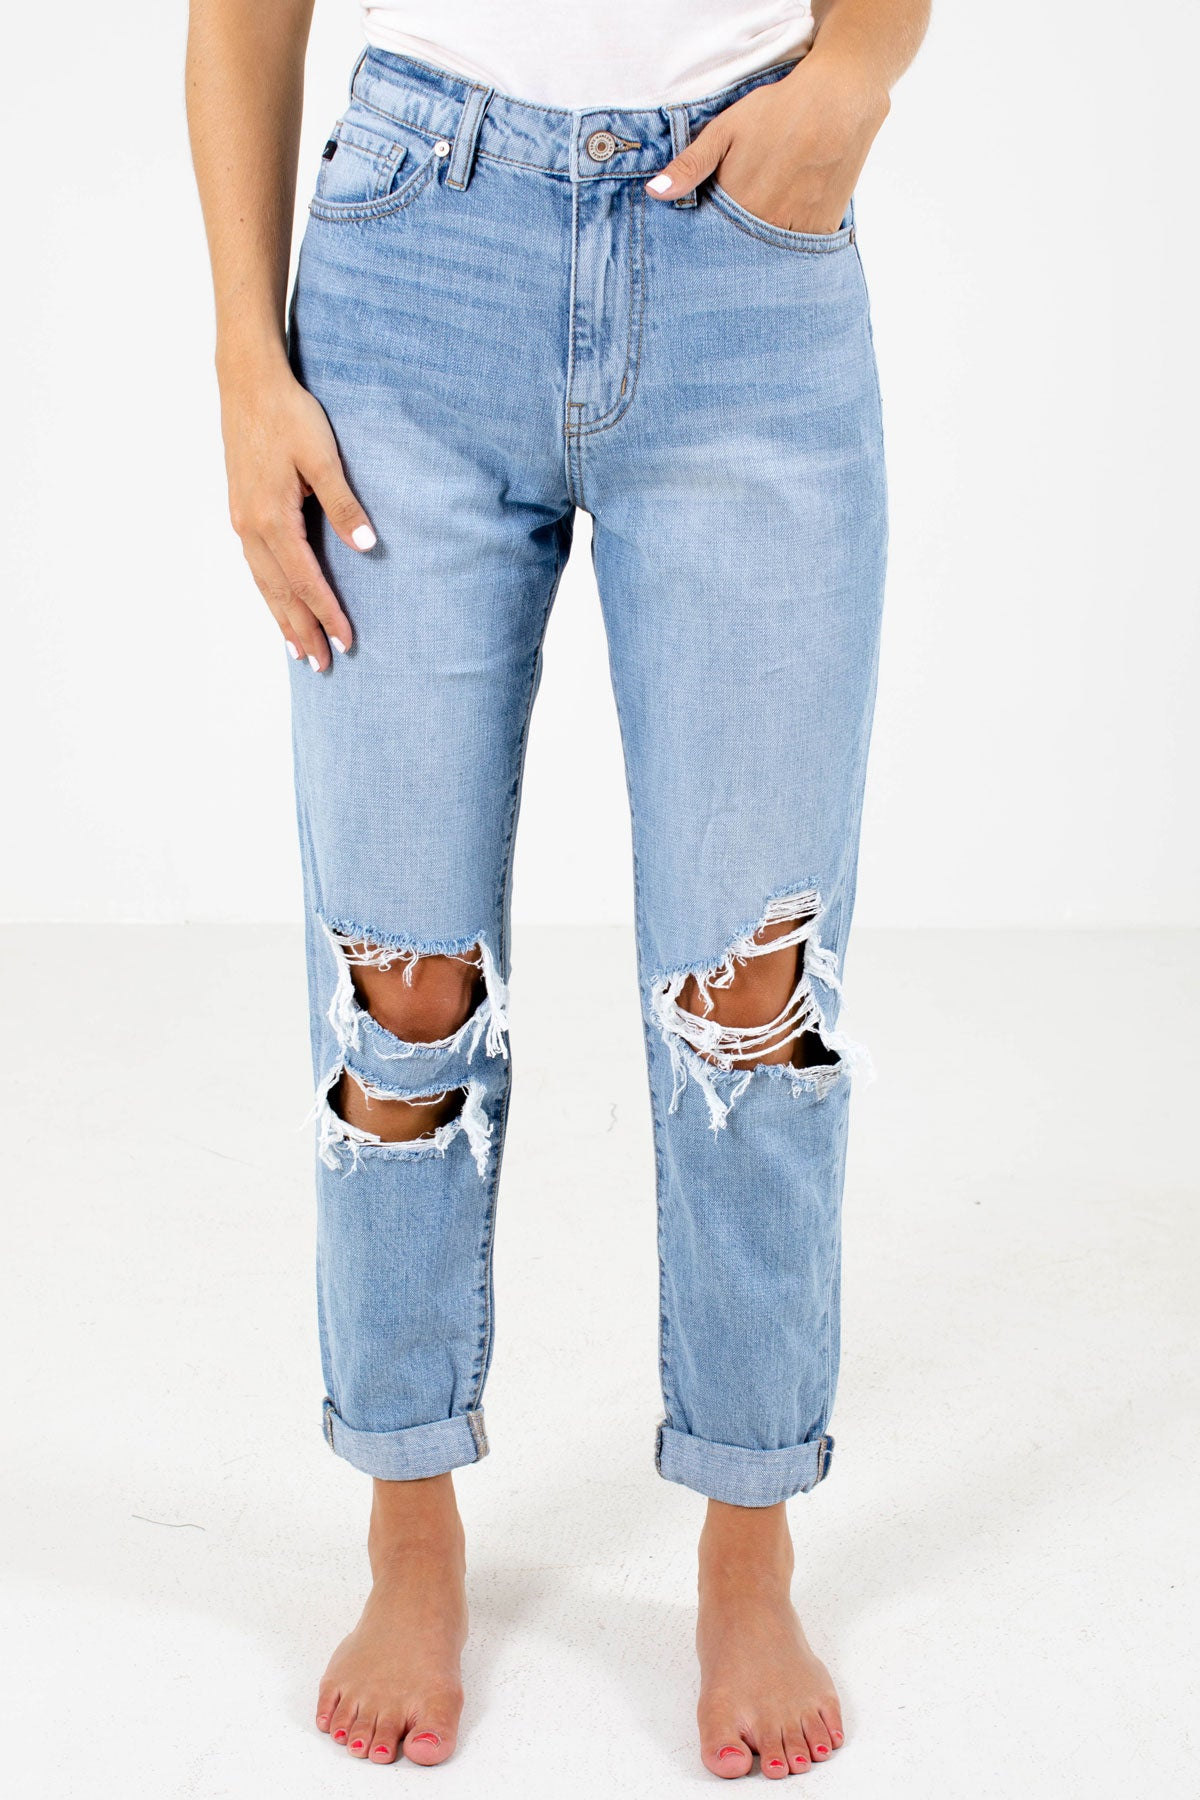 Light Wash Blue Boutique KanCan Jeans for Women